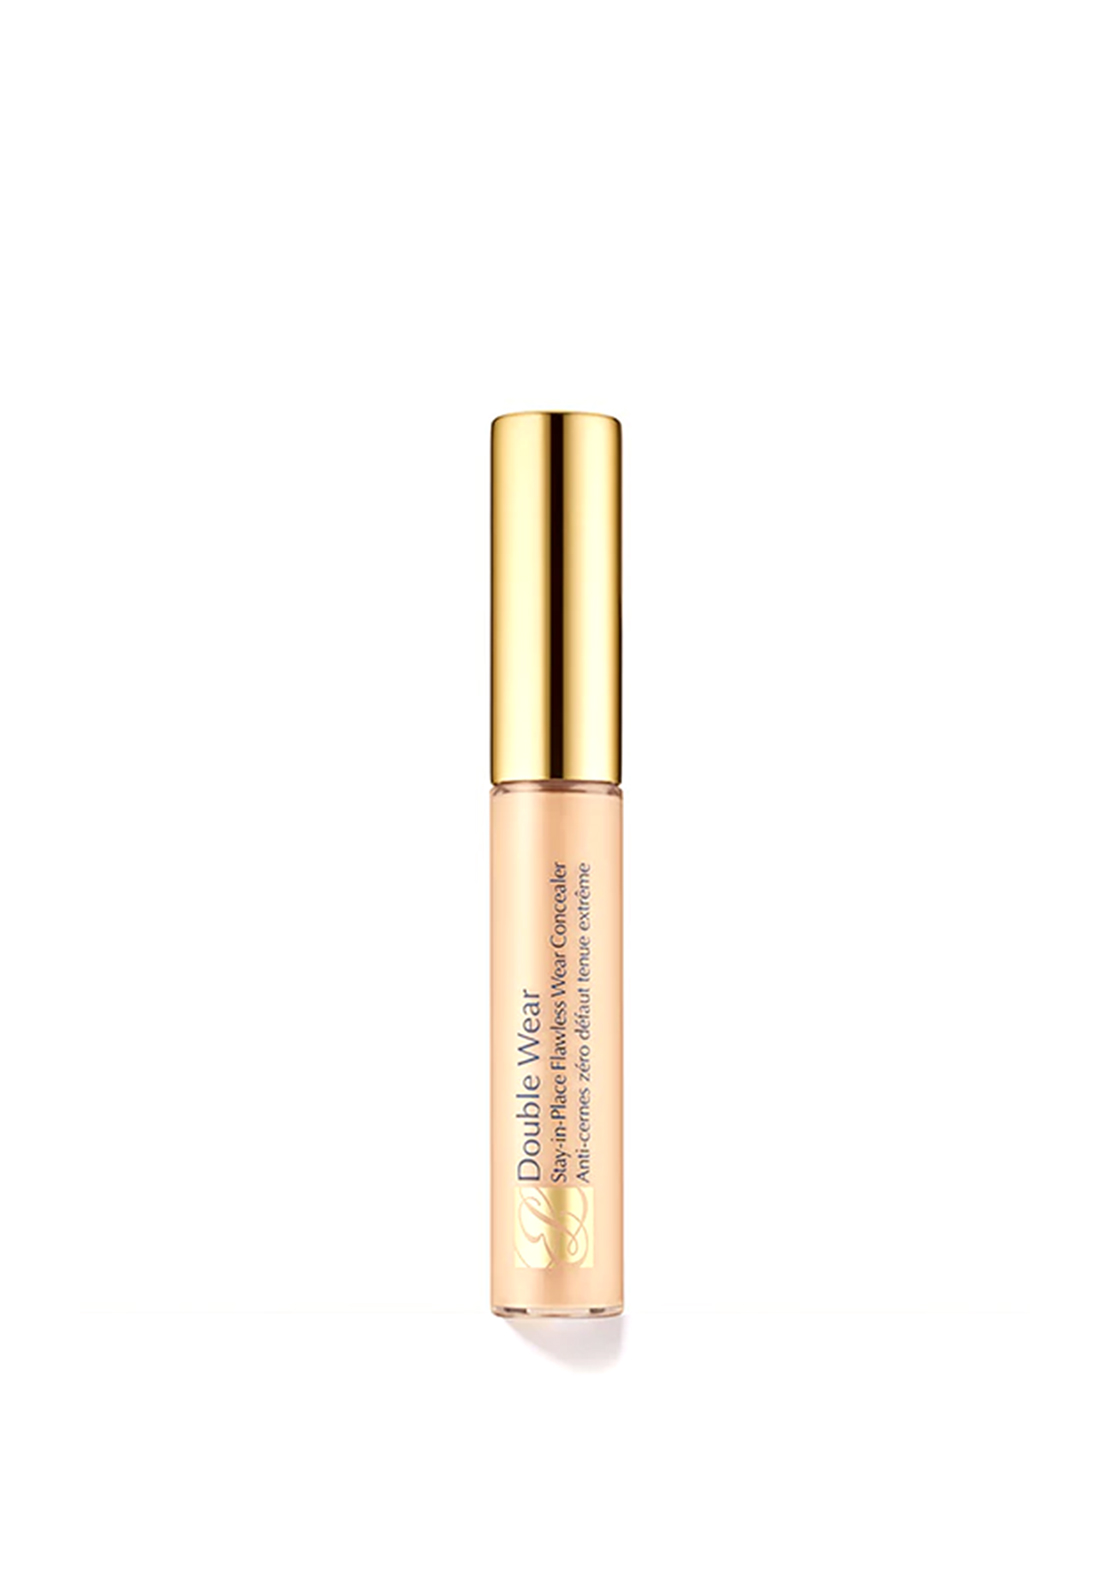 Estee Lauder Double Wear Stay-In Place Lawless Wear Concealer, Light Cool